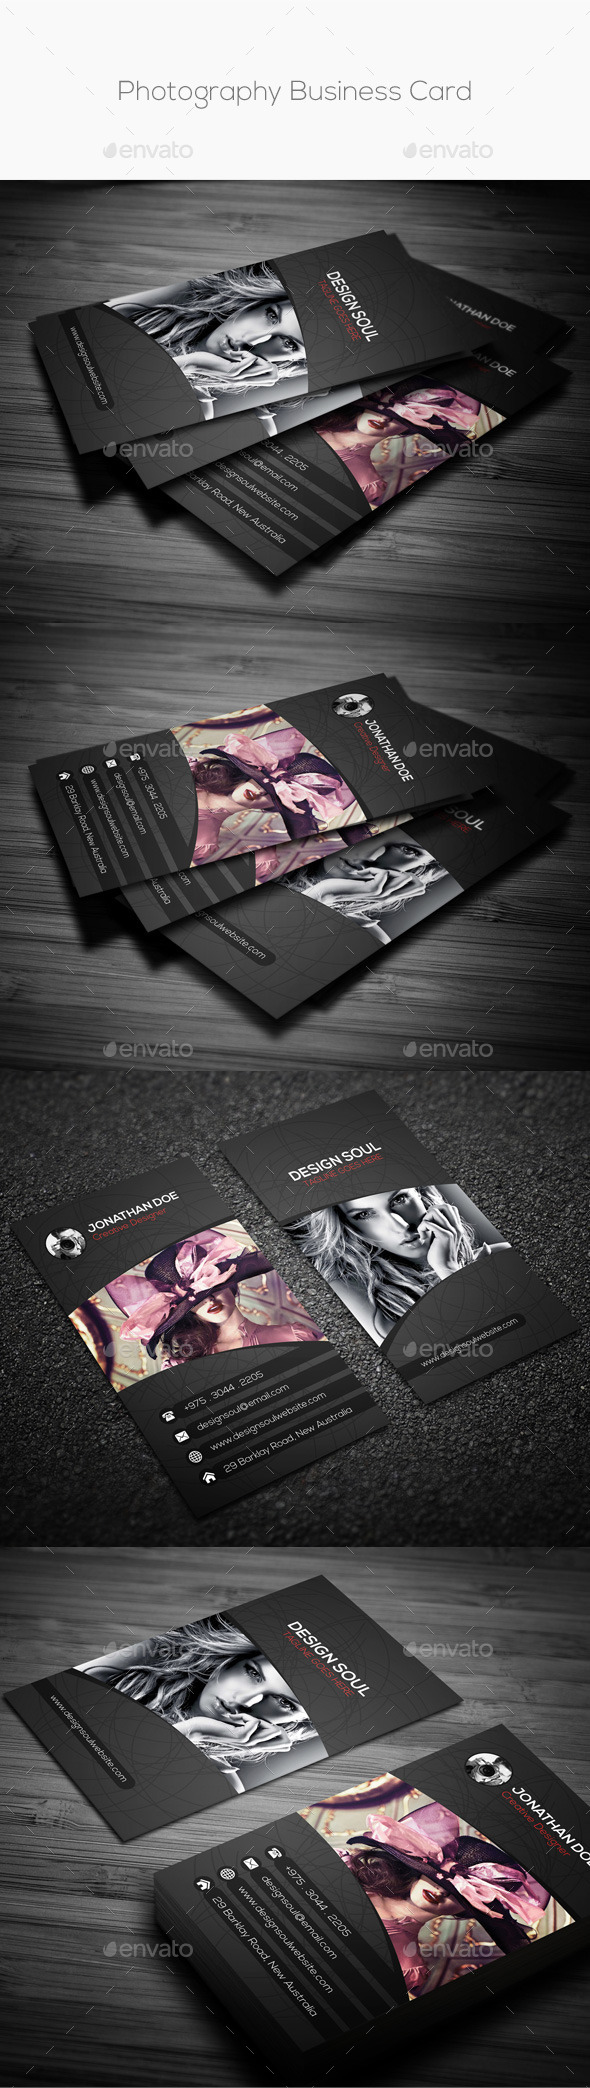 GraphicRiver Photography Business Card 10277117